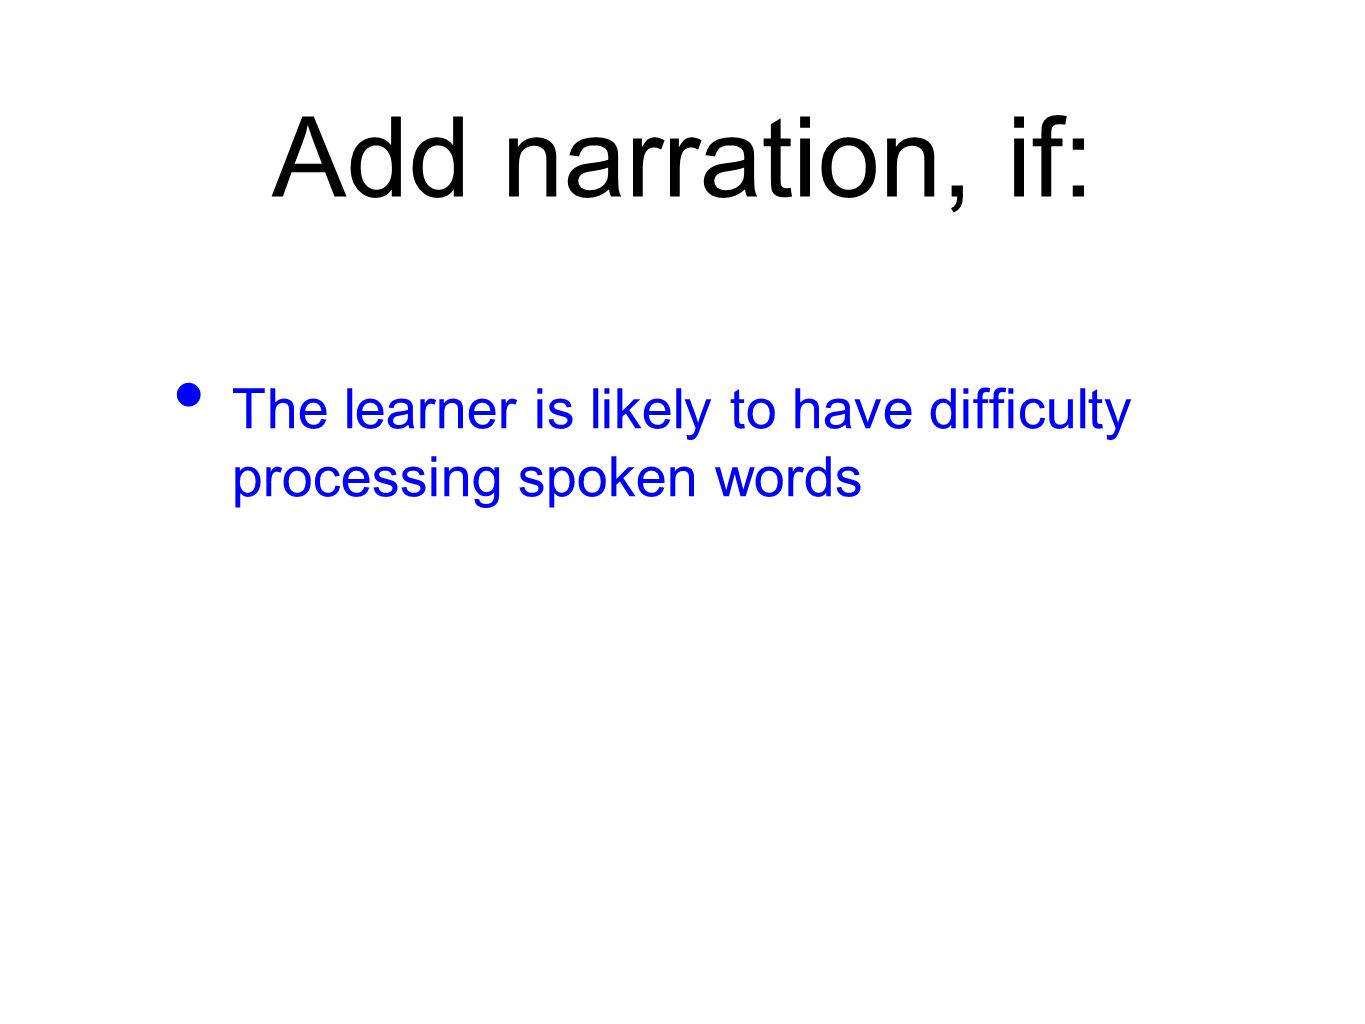 Add narration, if: The learner is likely to have difficulty processing spoken words